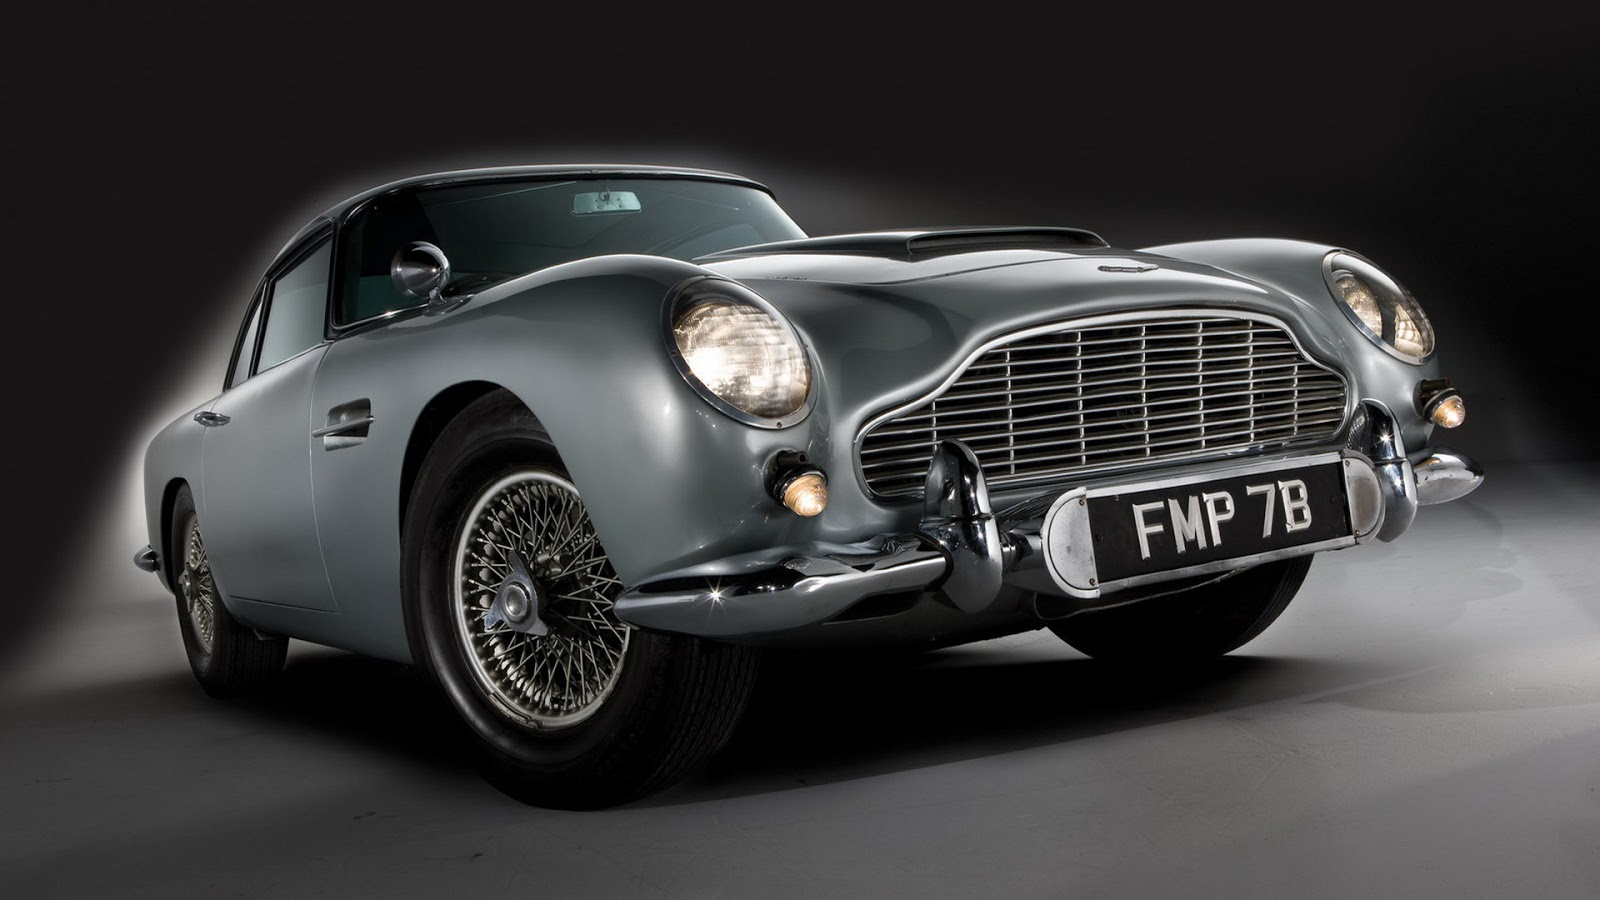 Hd wallpaper aston martin db5 james bond hd wallpapers - James bond images hd ...